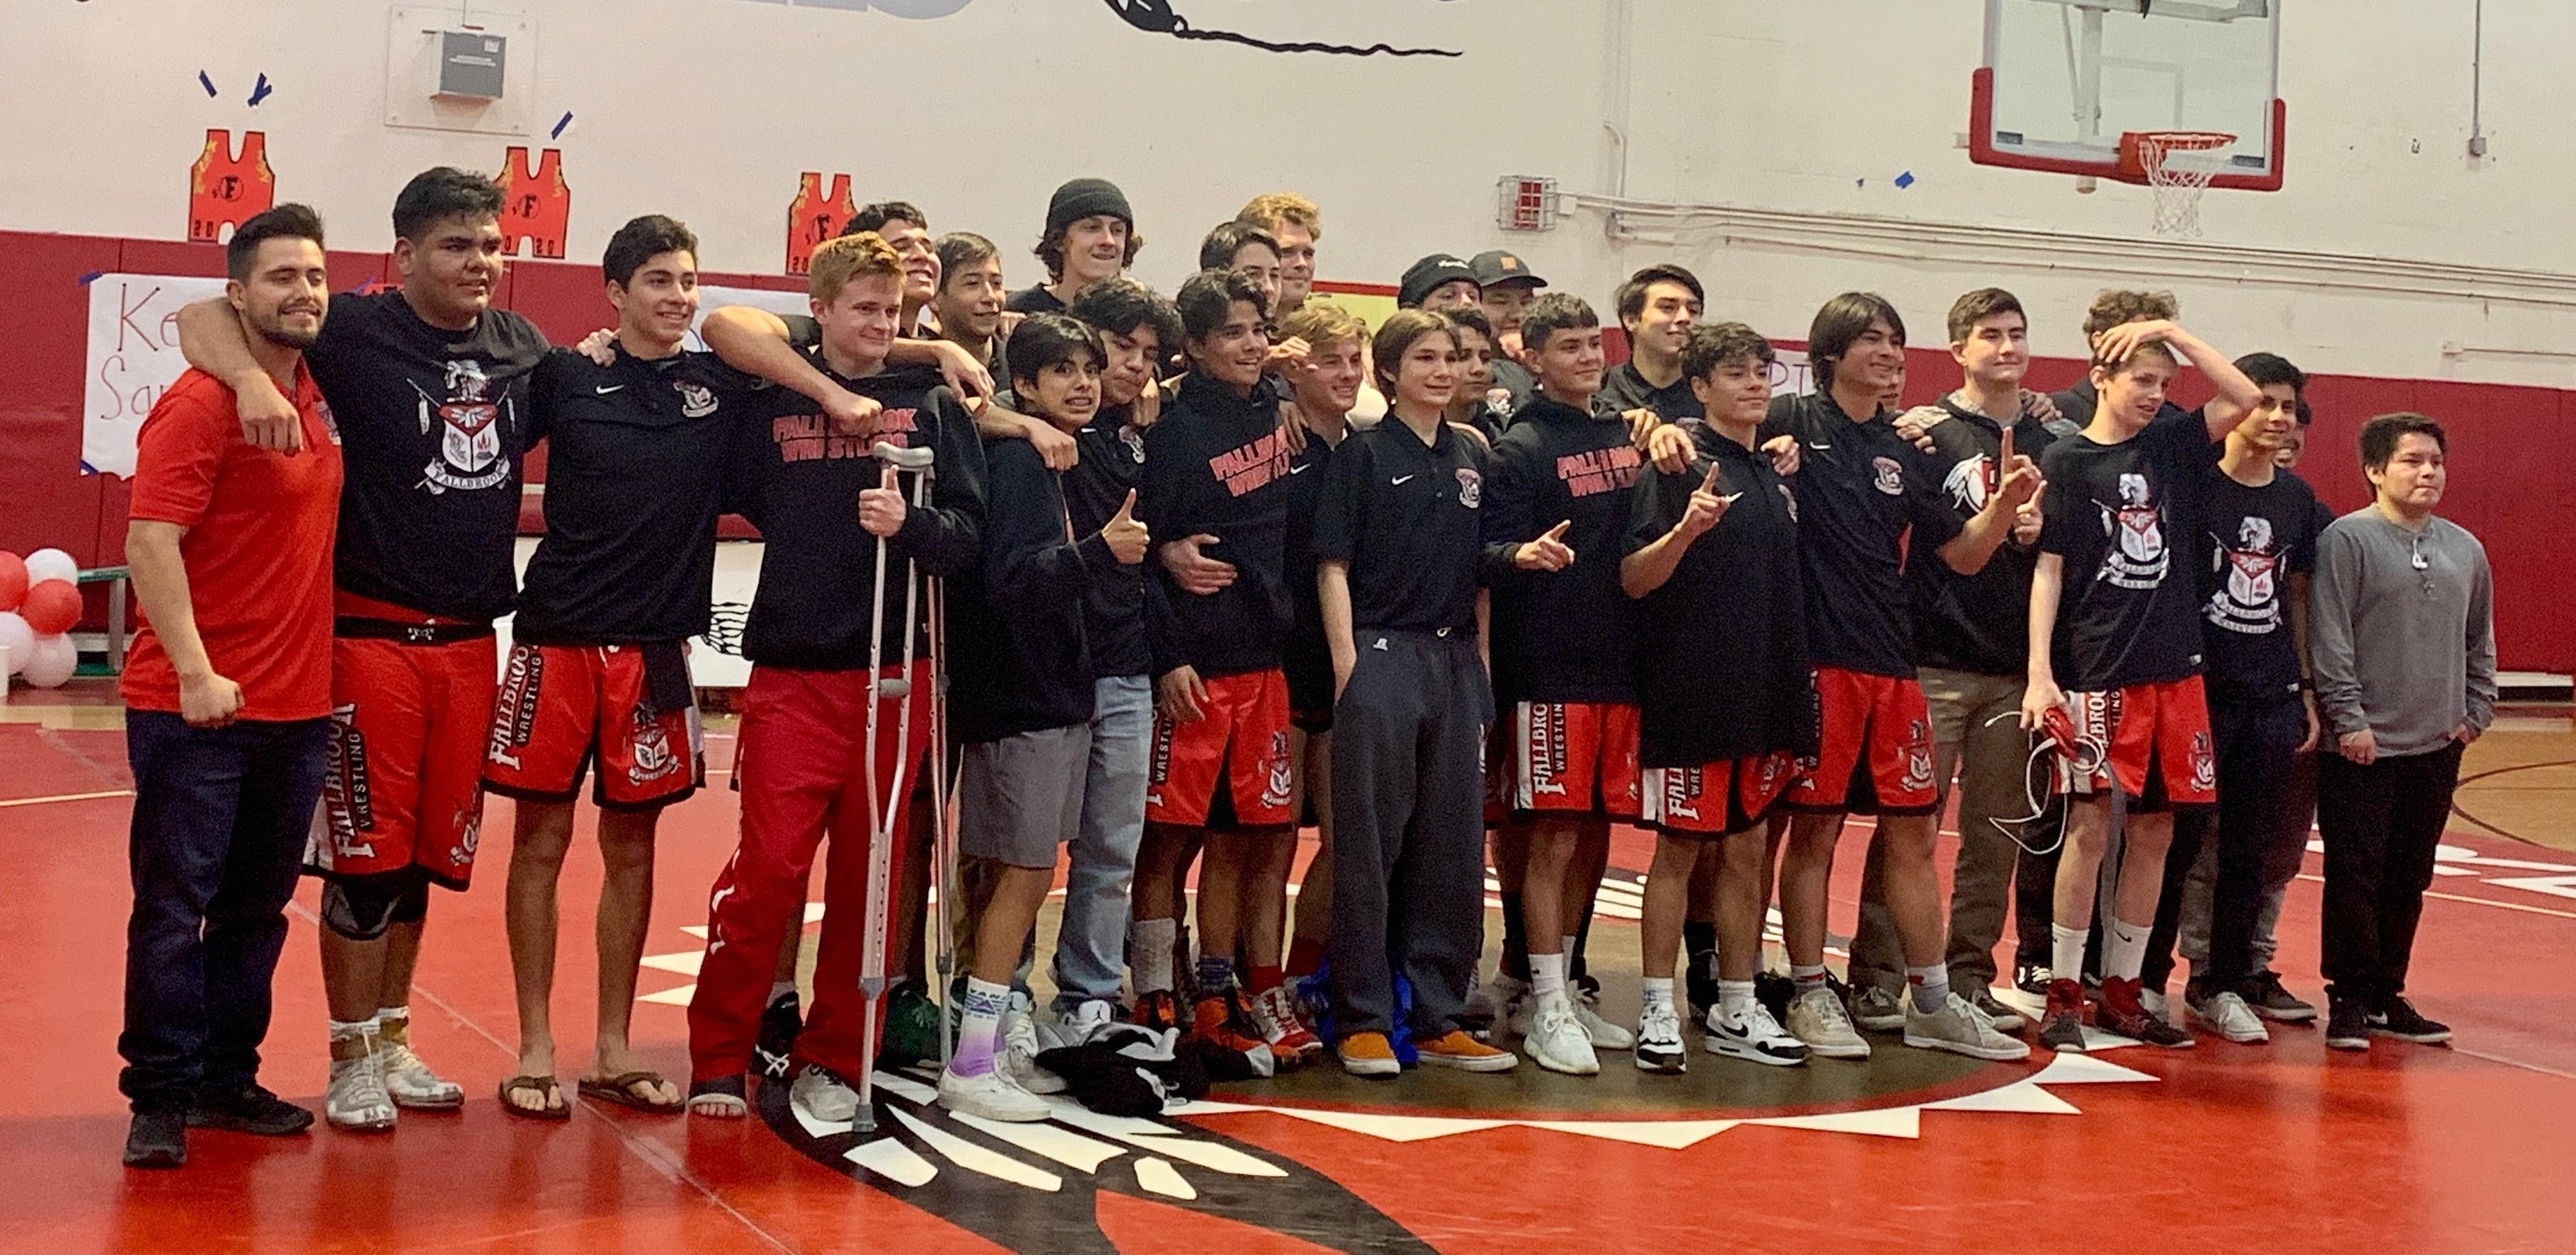 Warrior Wrestling League Champs